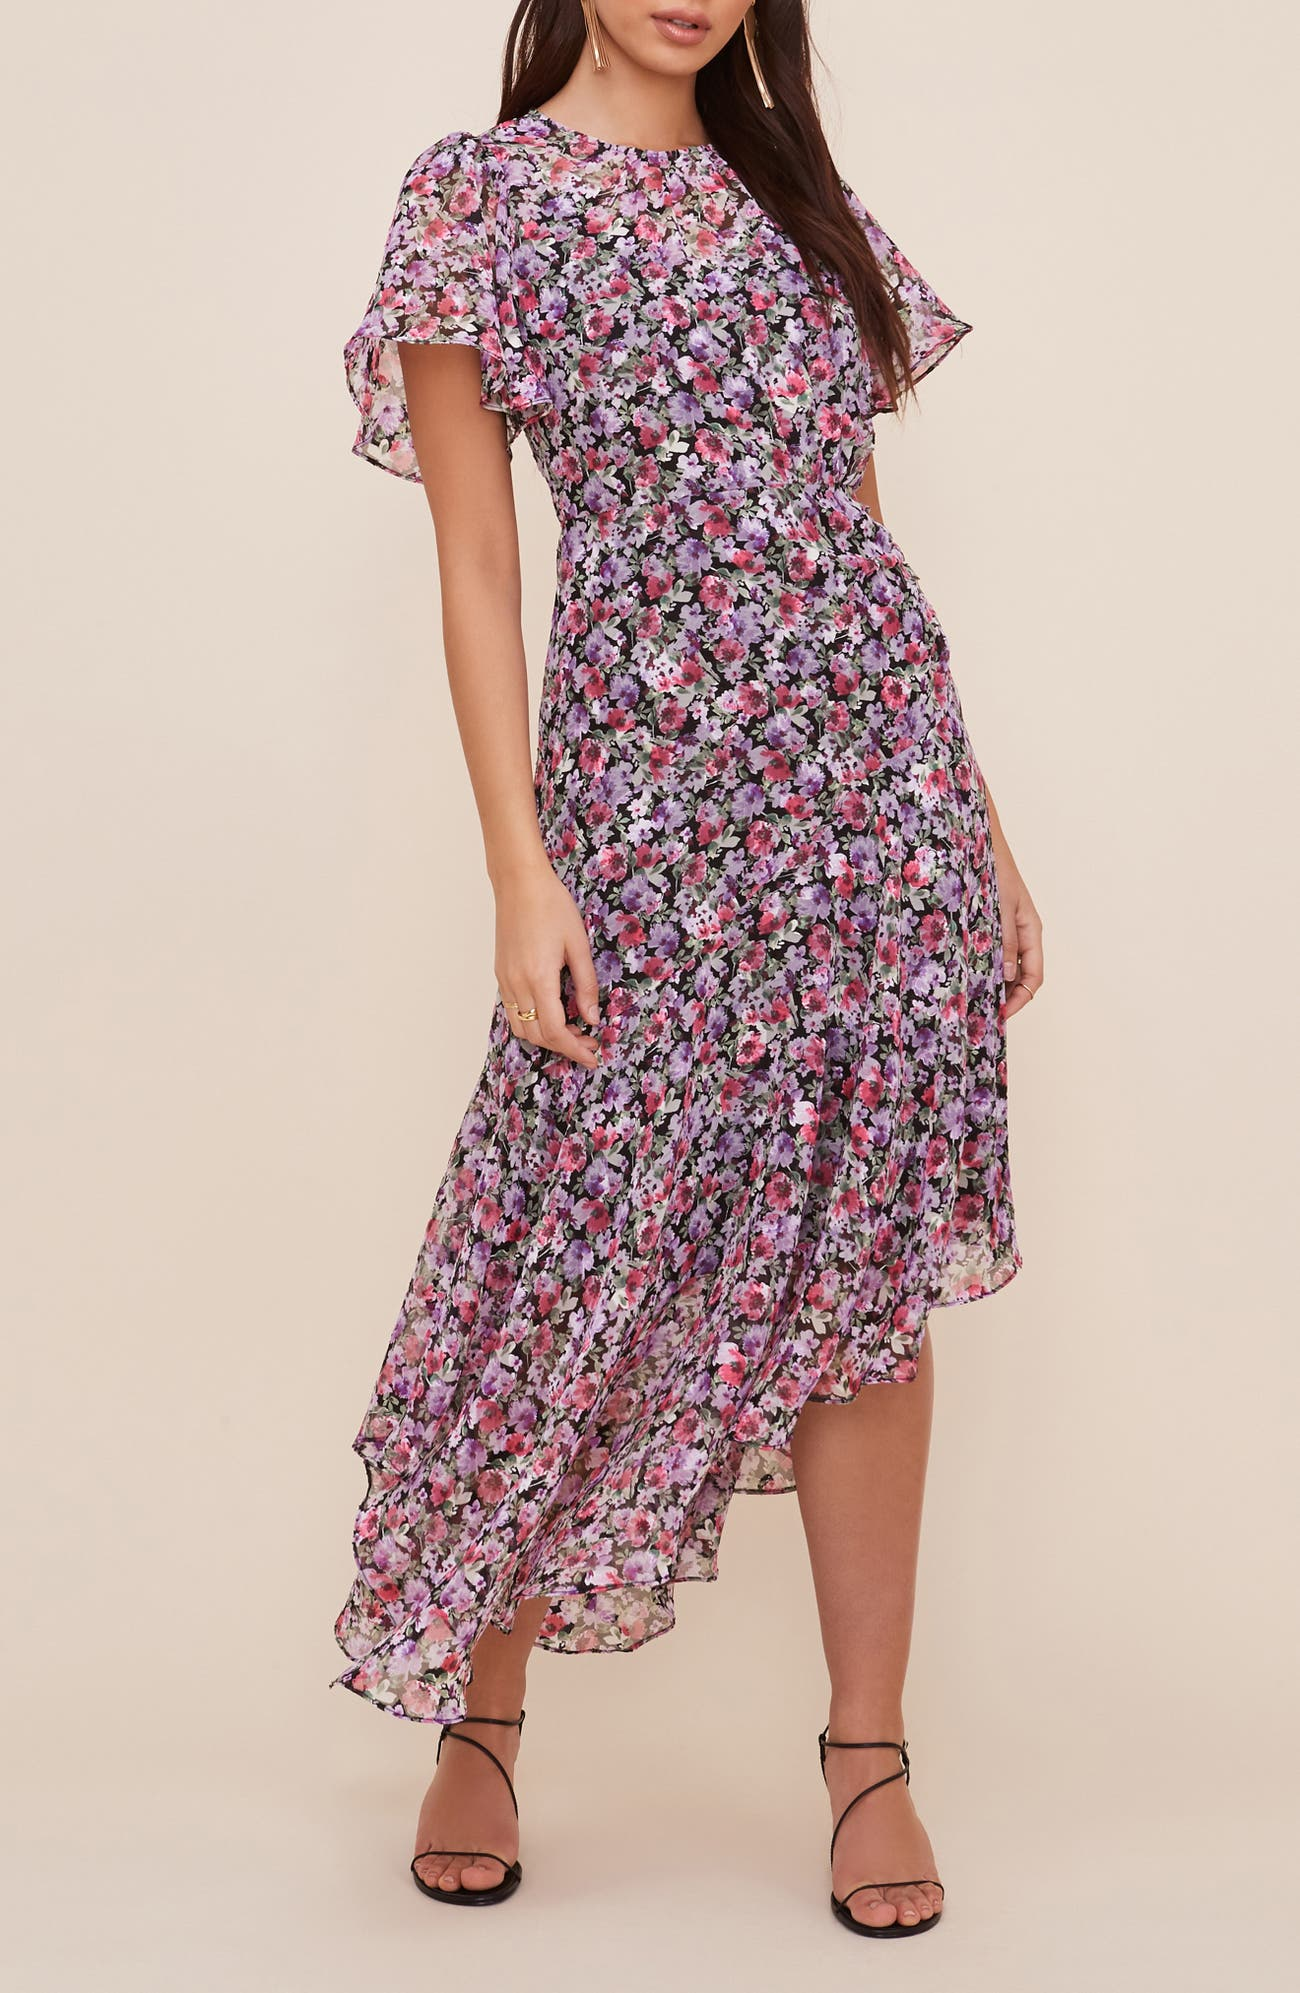 floral print dress with flutter sleeves for a spring wedding